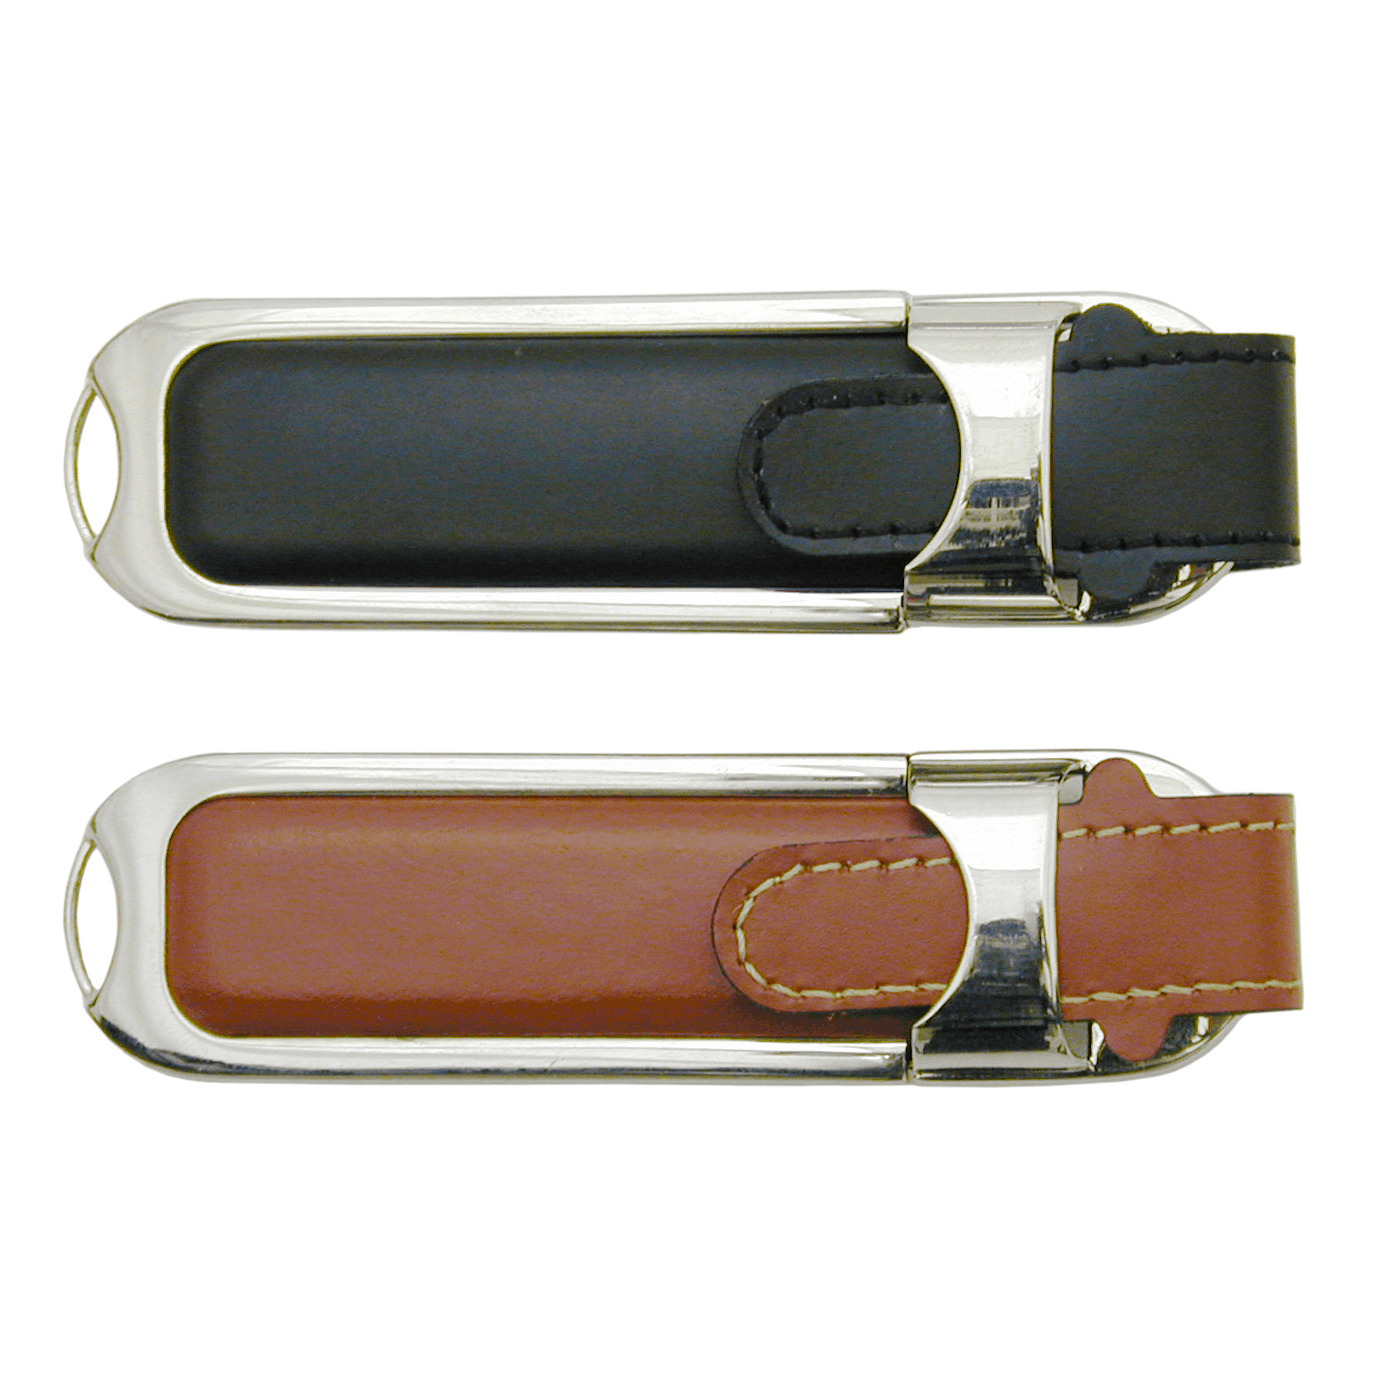 Genuine Leather USB Flash Drive - 1GB